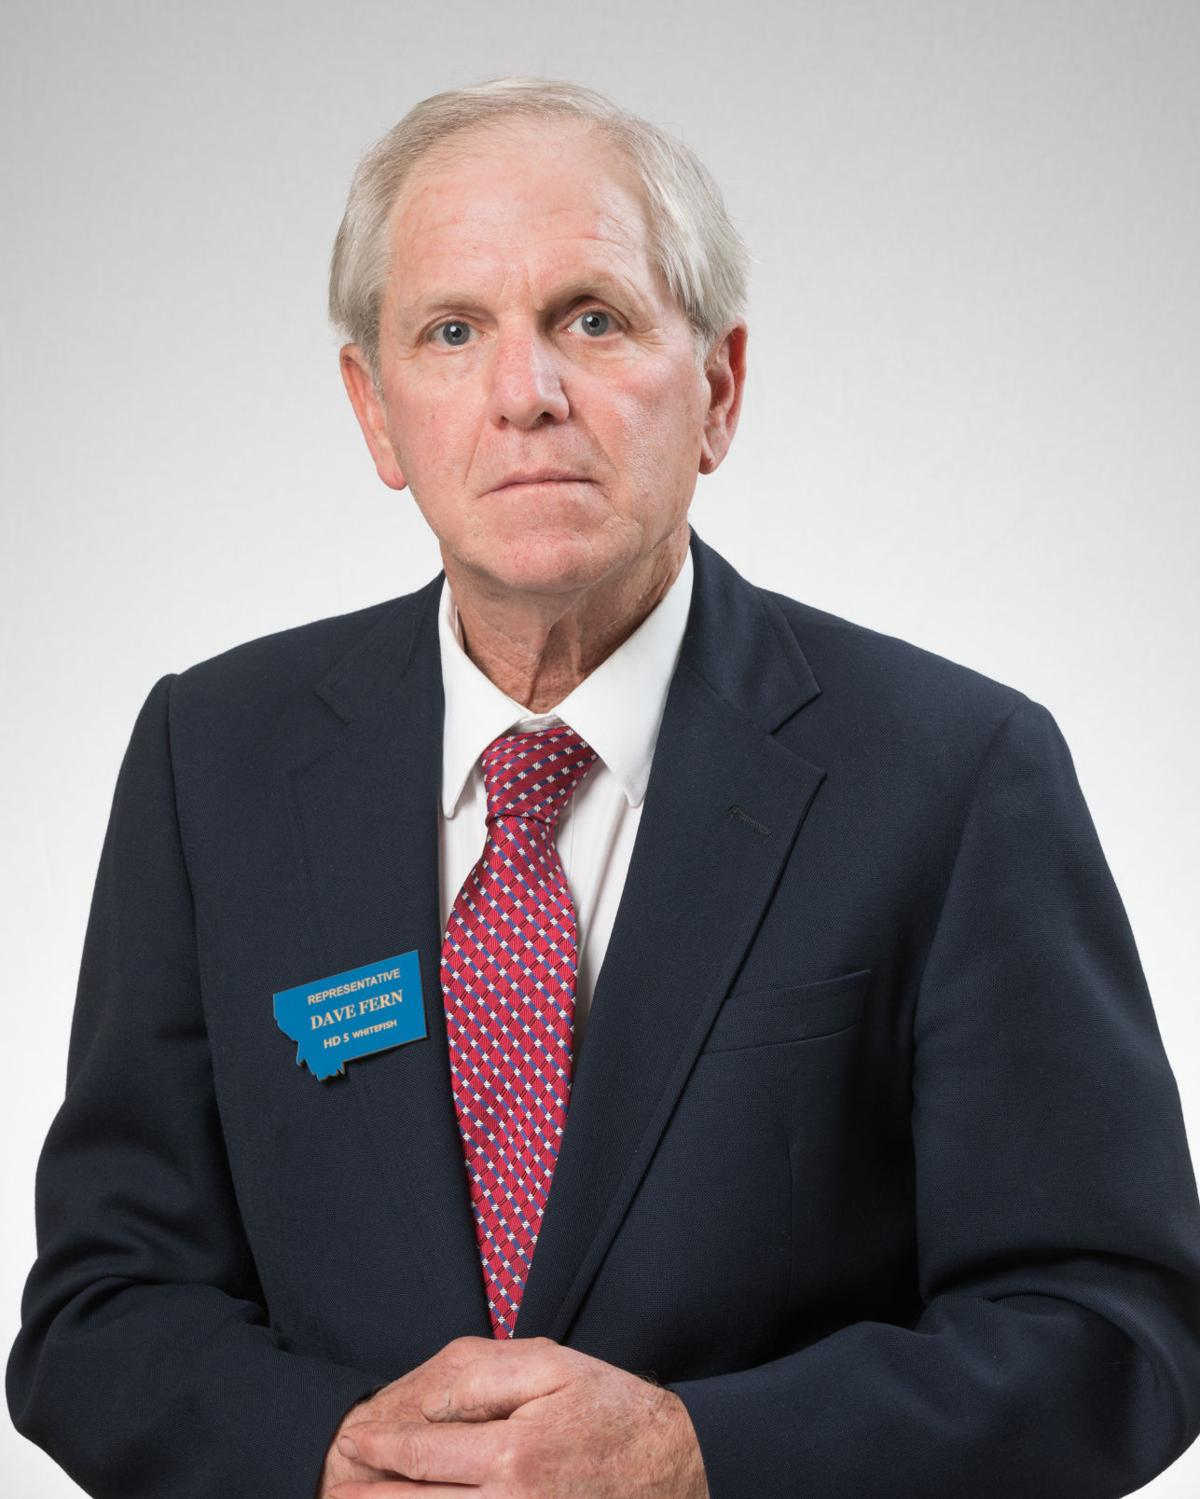 Rep. Dave Fern (D-Whitefish)